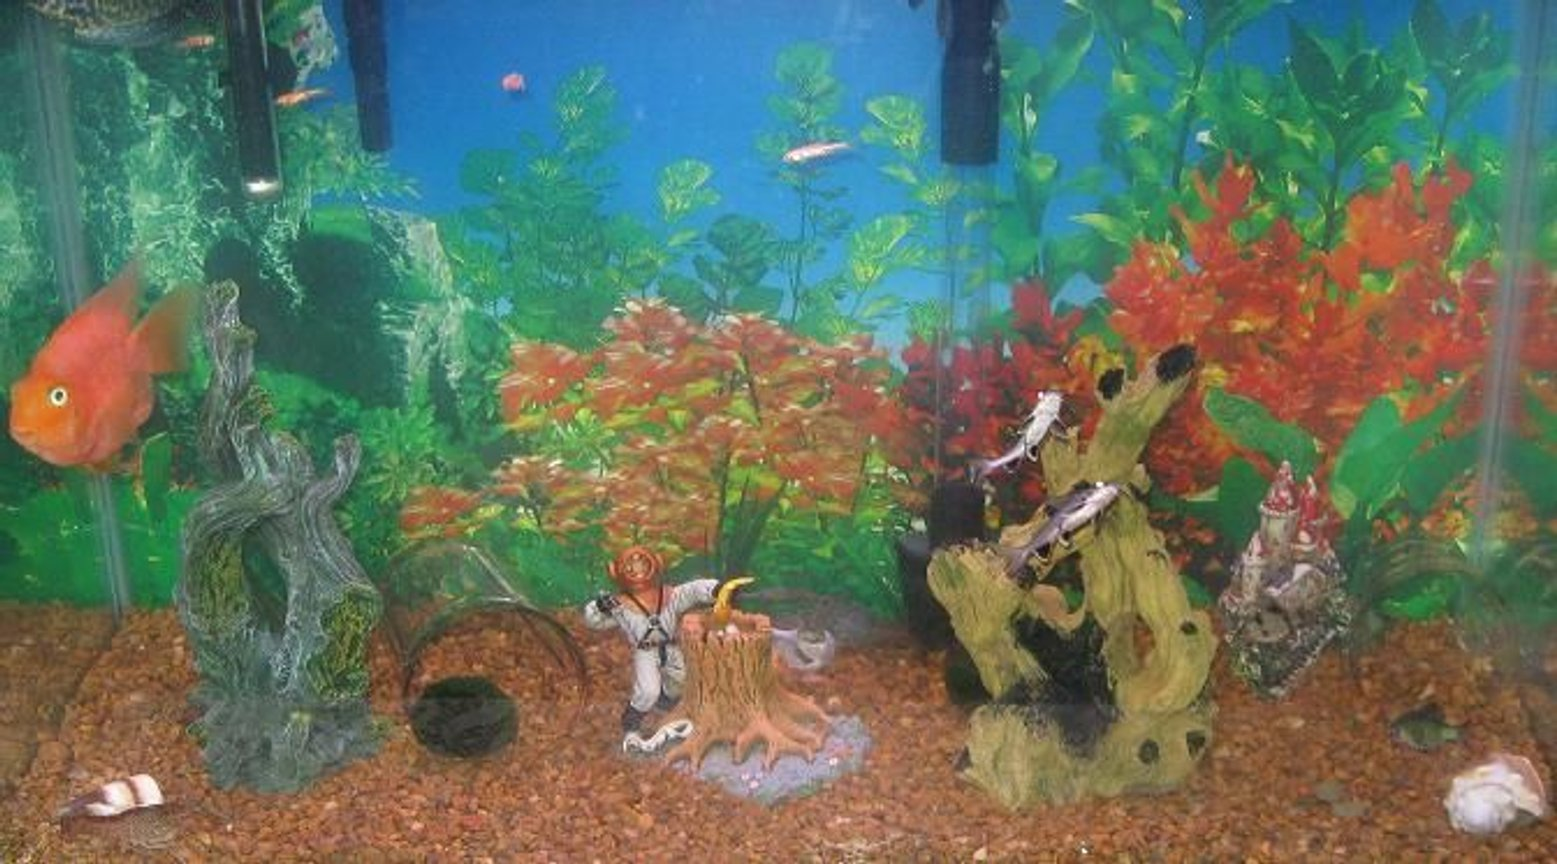 29 gallons freshwater fish tank (mostly fish and non-living decorations) - My 3 children made this tank . They are 7M 5F 4M . This is there first tank